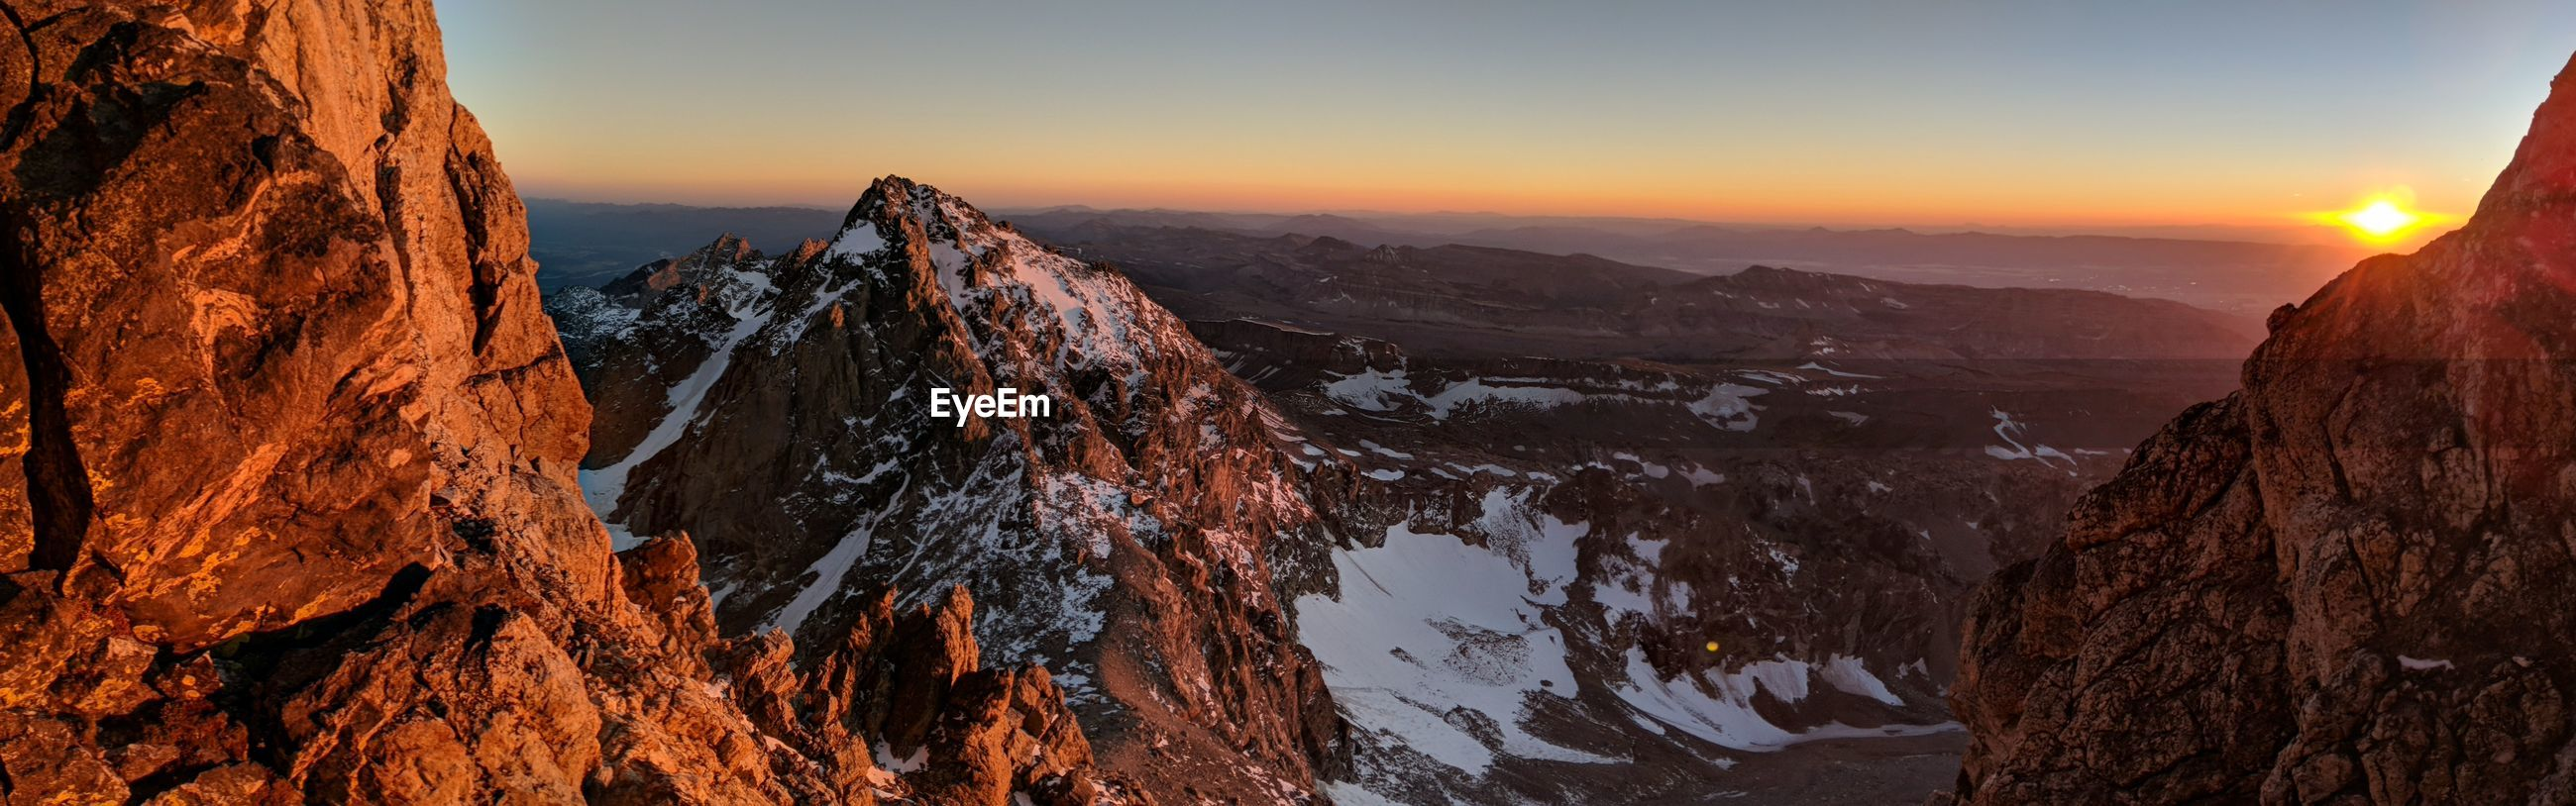 PANORAMIC VIEW OF SNOWCAPPED MOUNTAINS DURING SUNSET